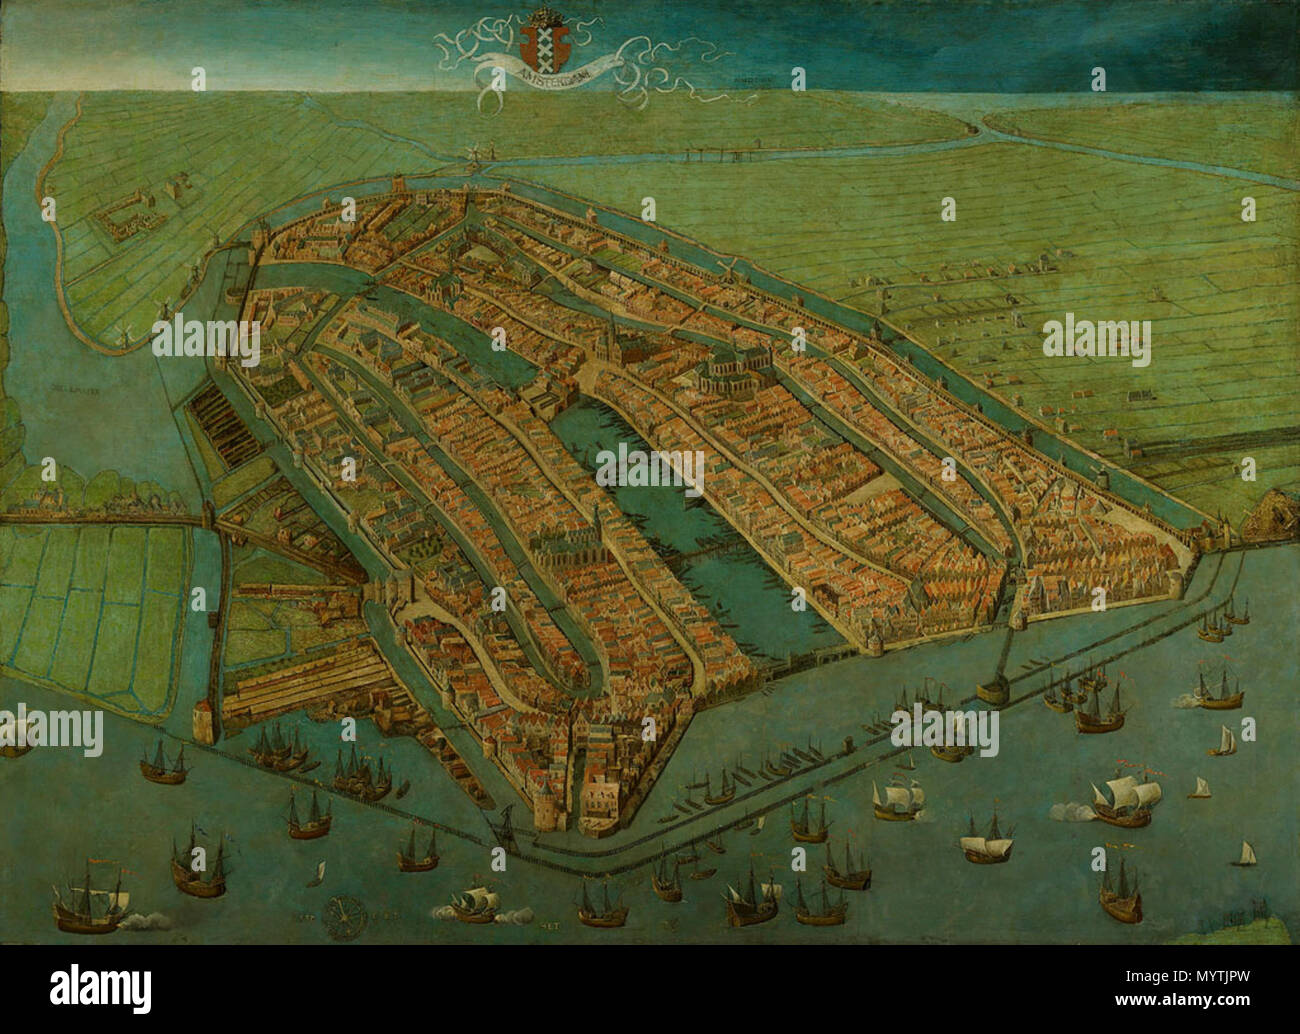 Oldest Surviving Map Of Amsterdam Showing The Citys Finished - Amsterdam old map